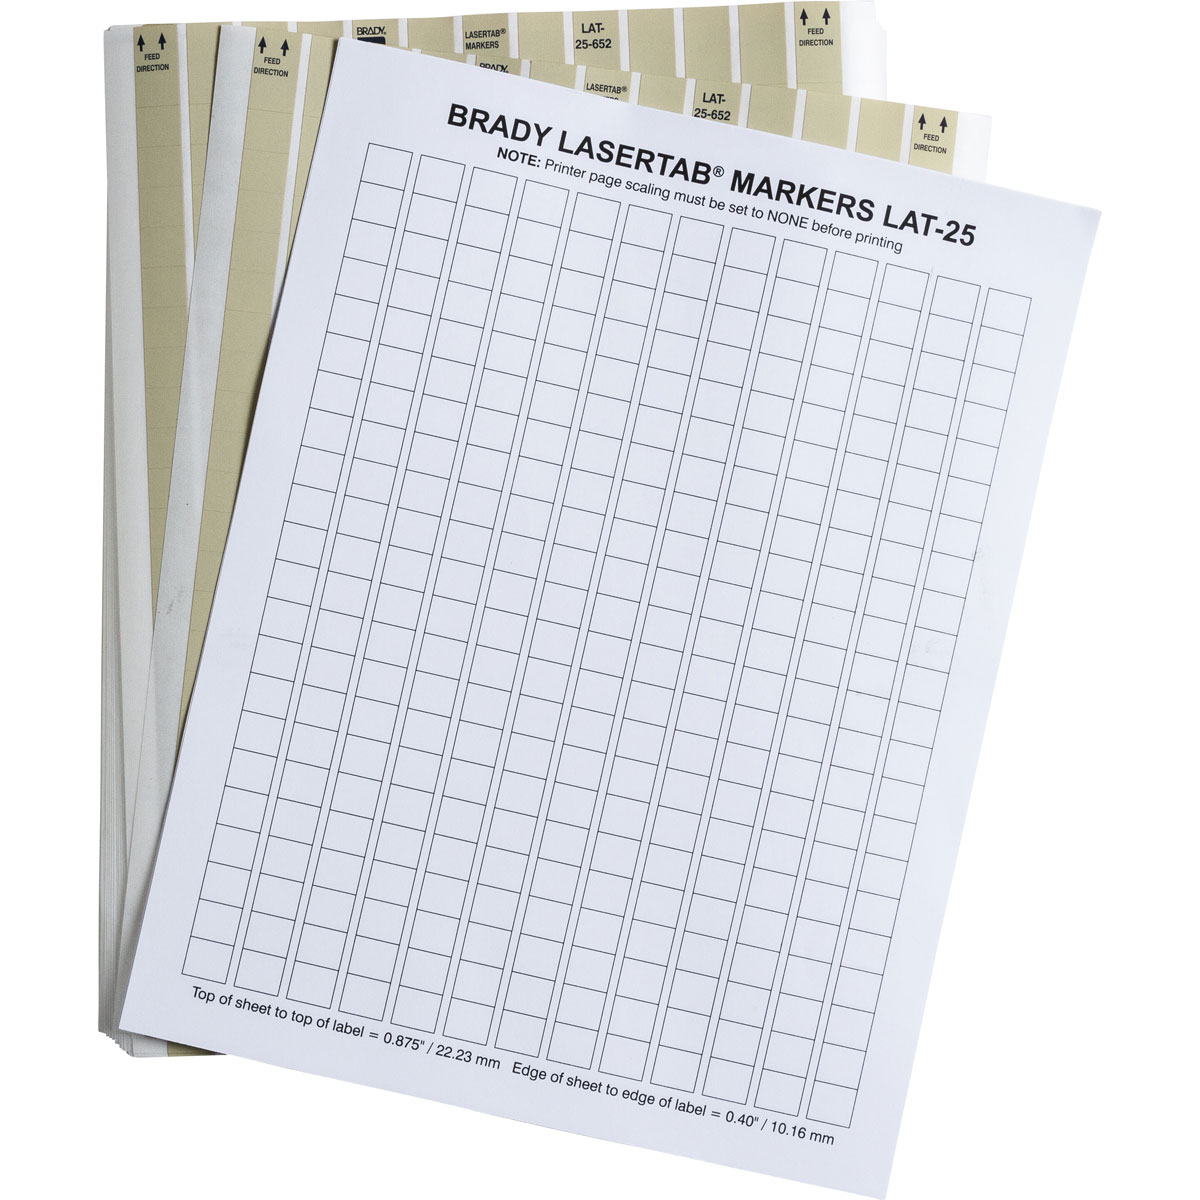 brady label templates - brady part lat 25 652 10 laser printable labels